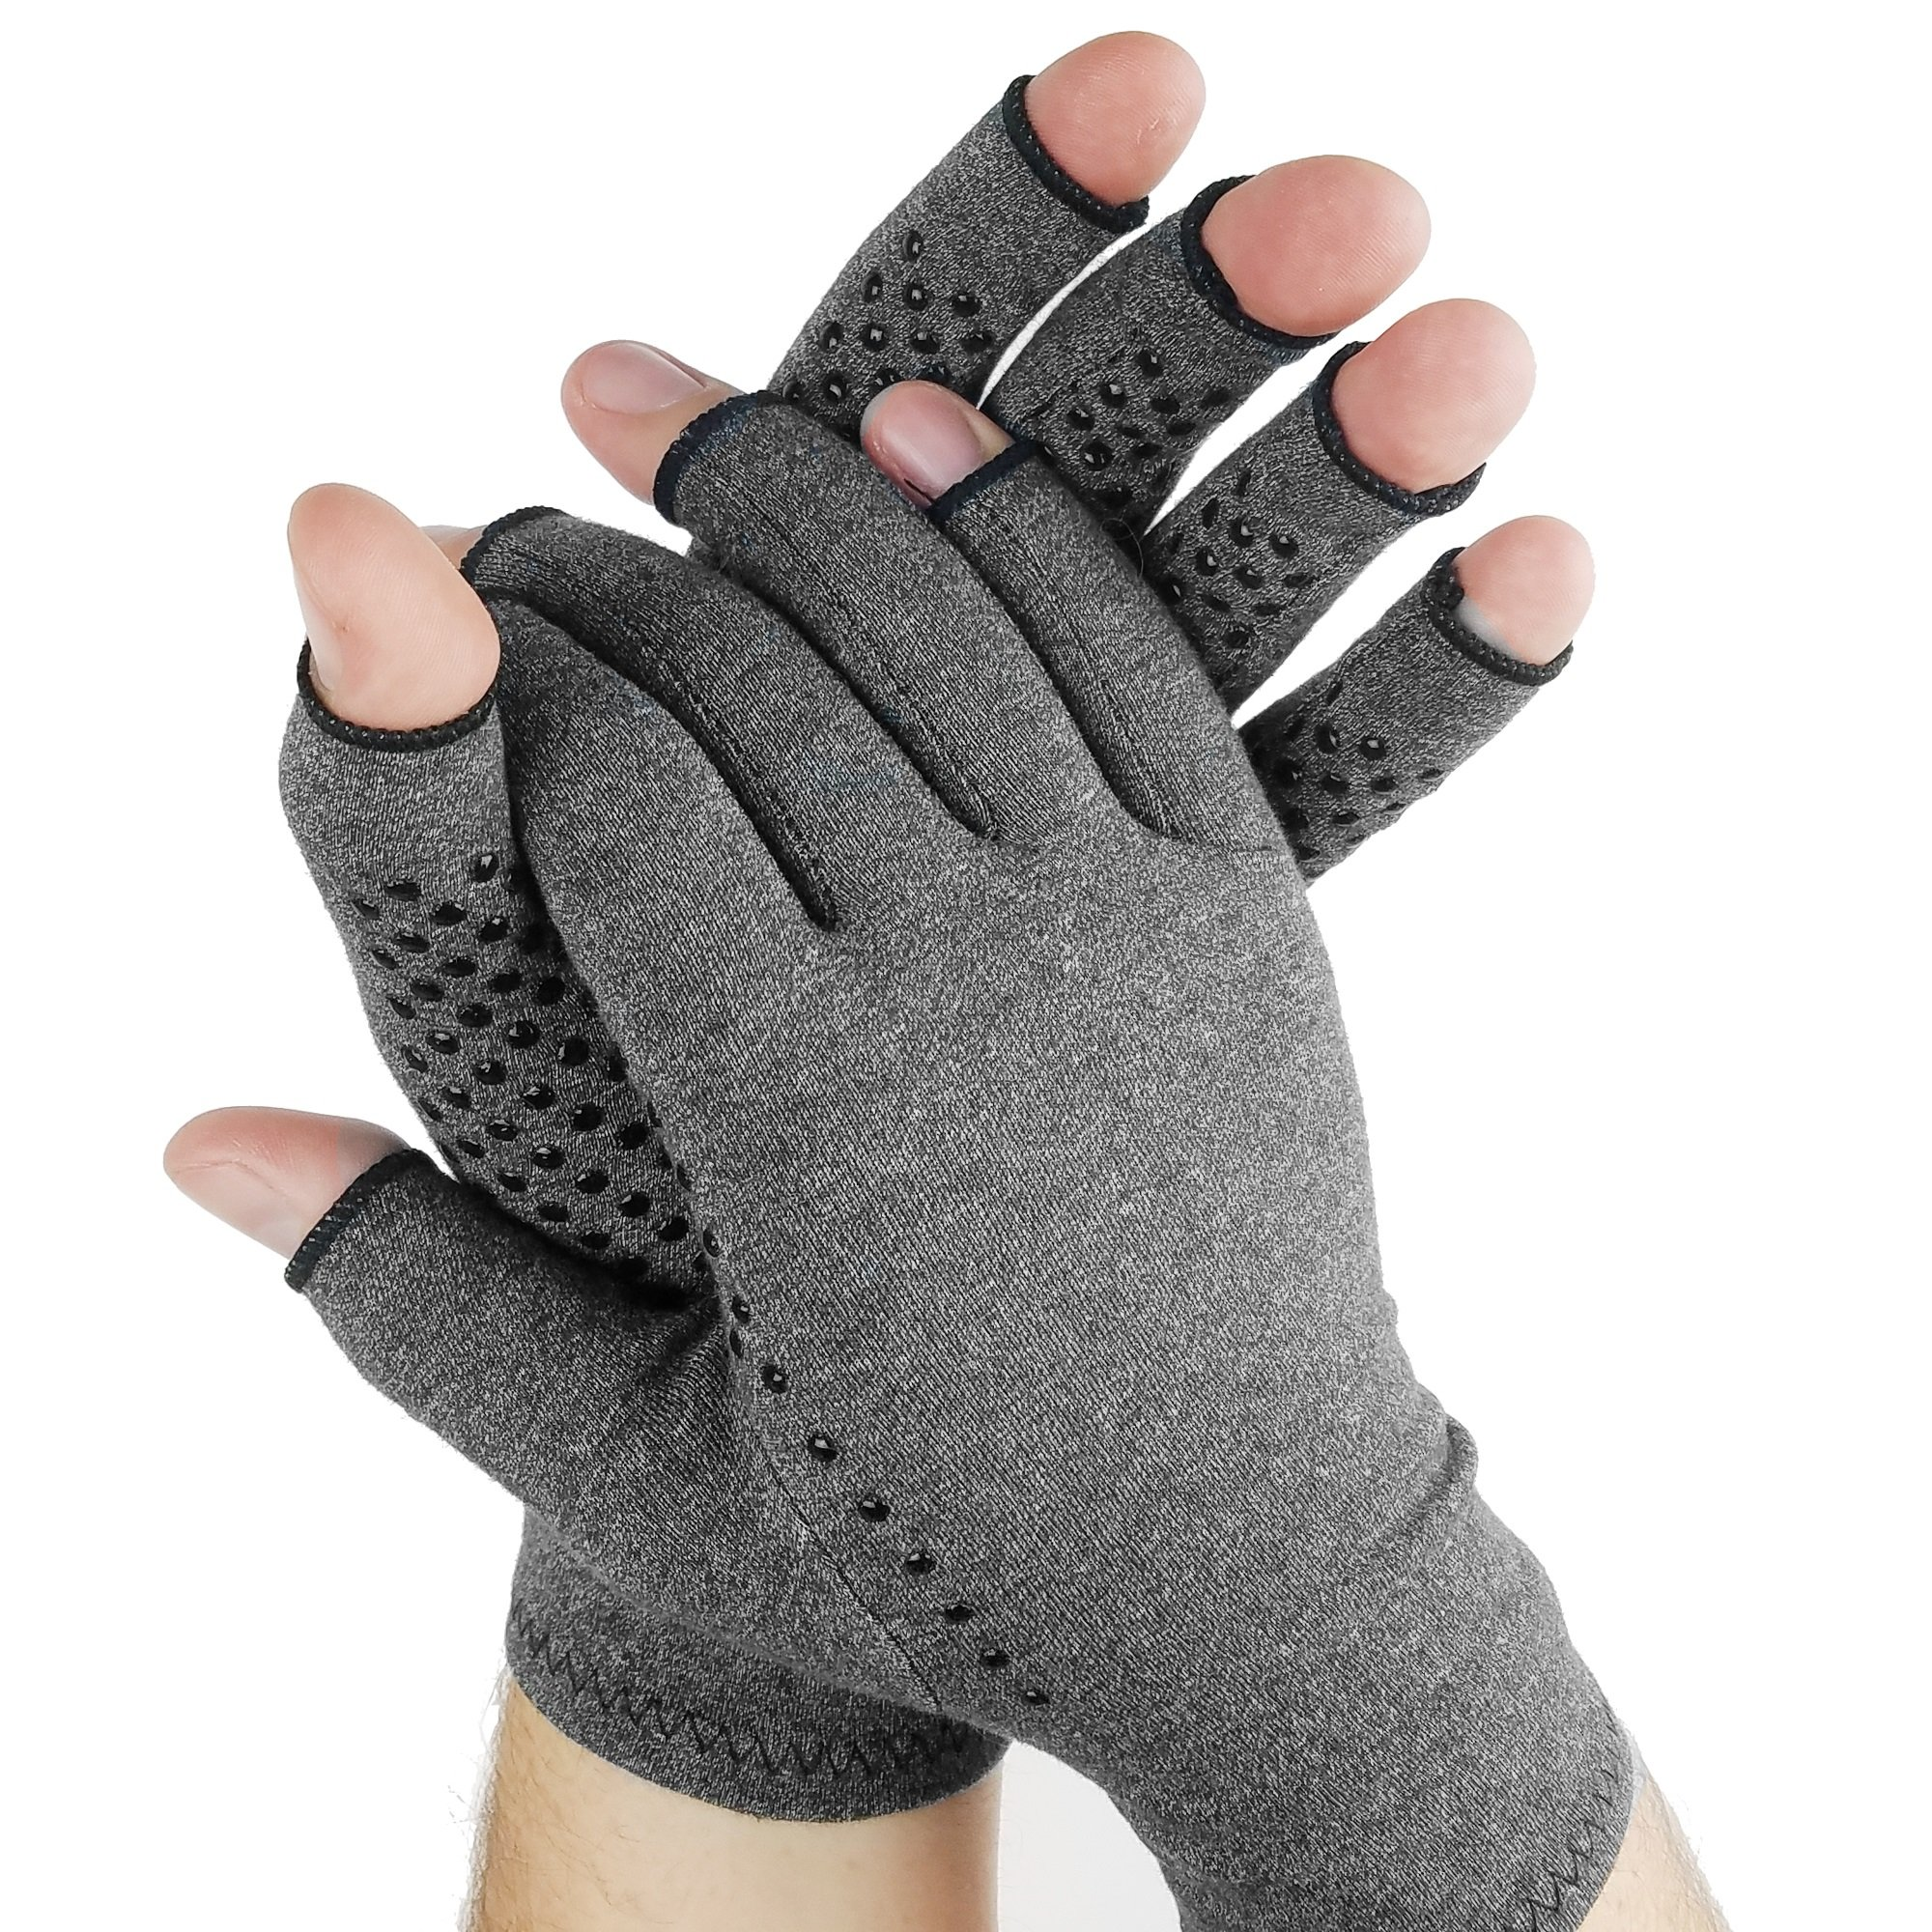 Compression Hand Gloves| Arthritis Gloves With Grips Open Fingers for Men and Women